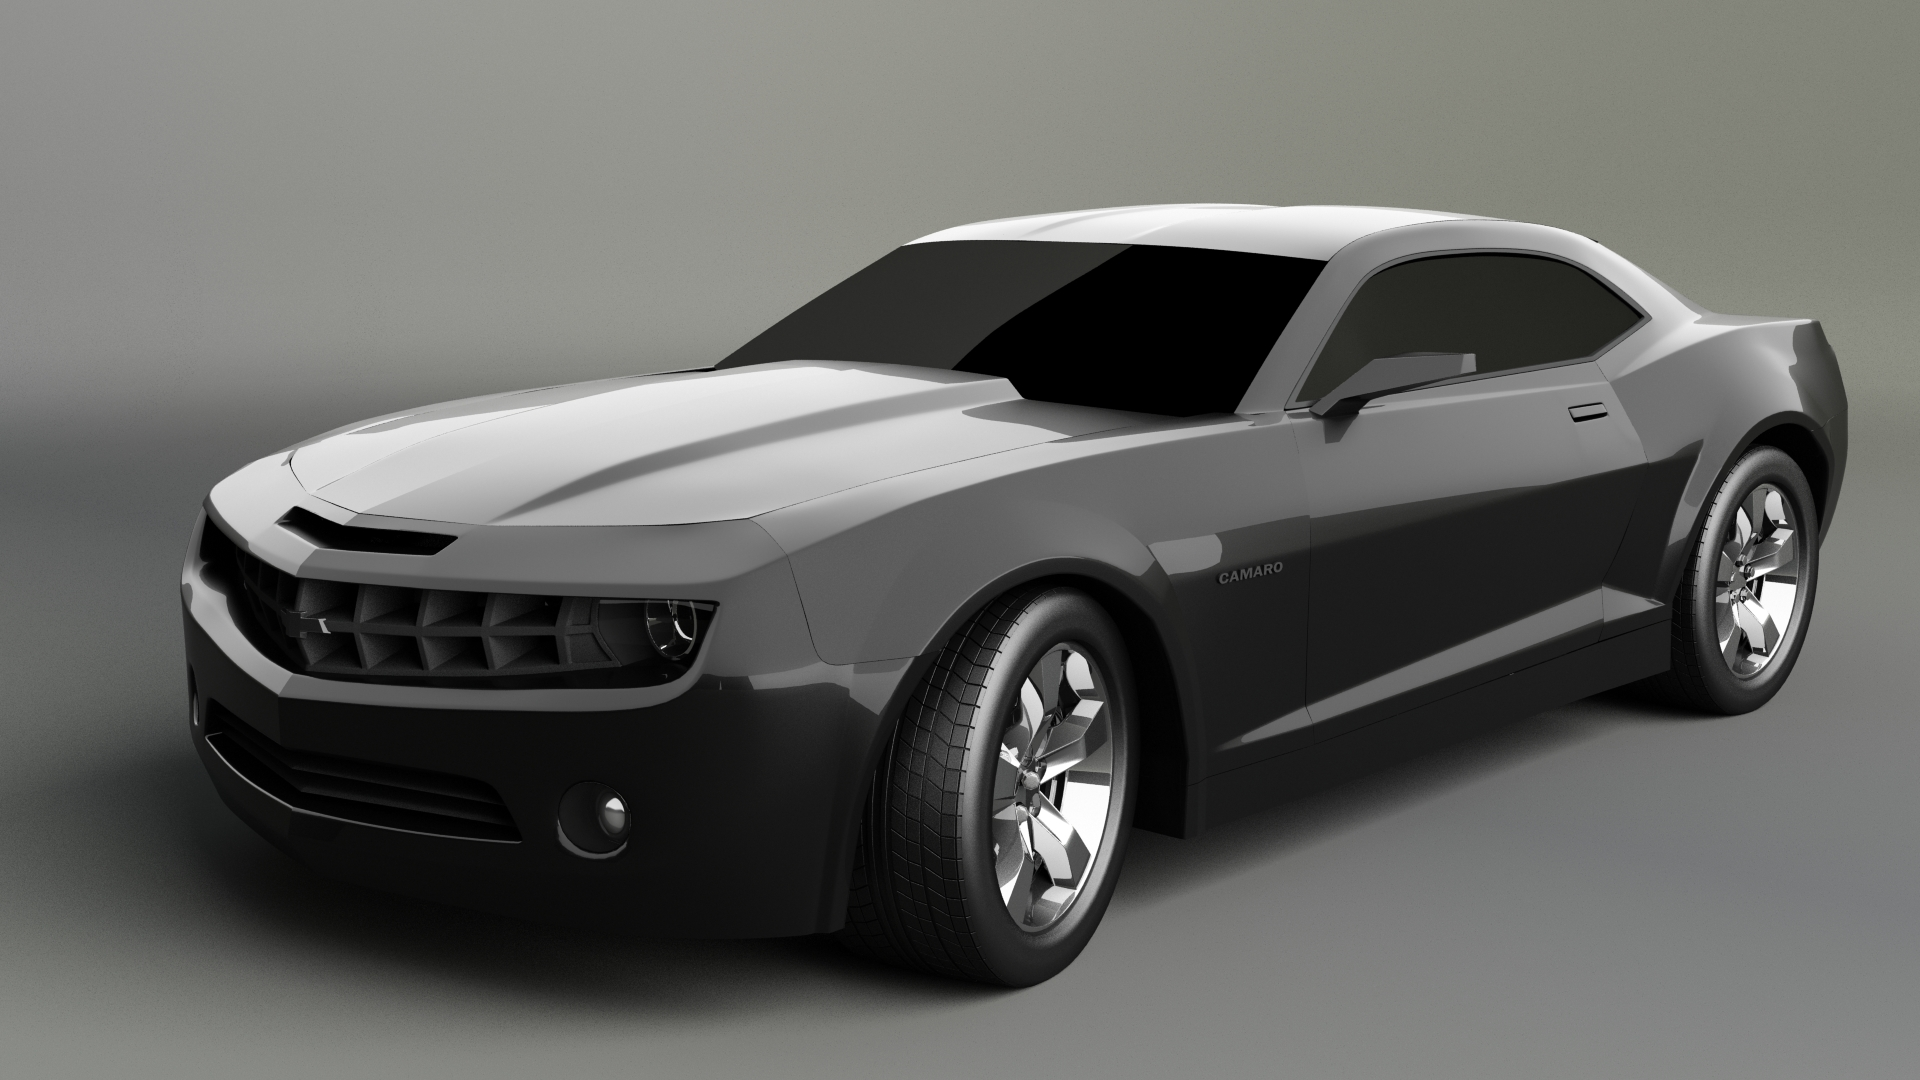 Chevy Camaro by Wintersun-nw